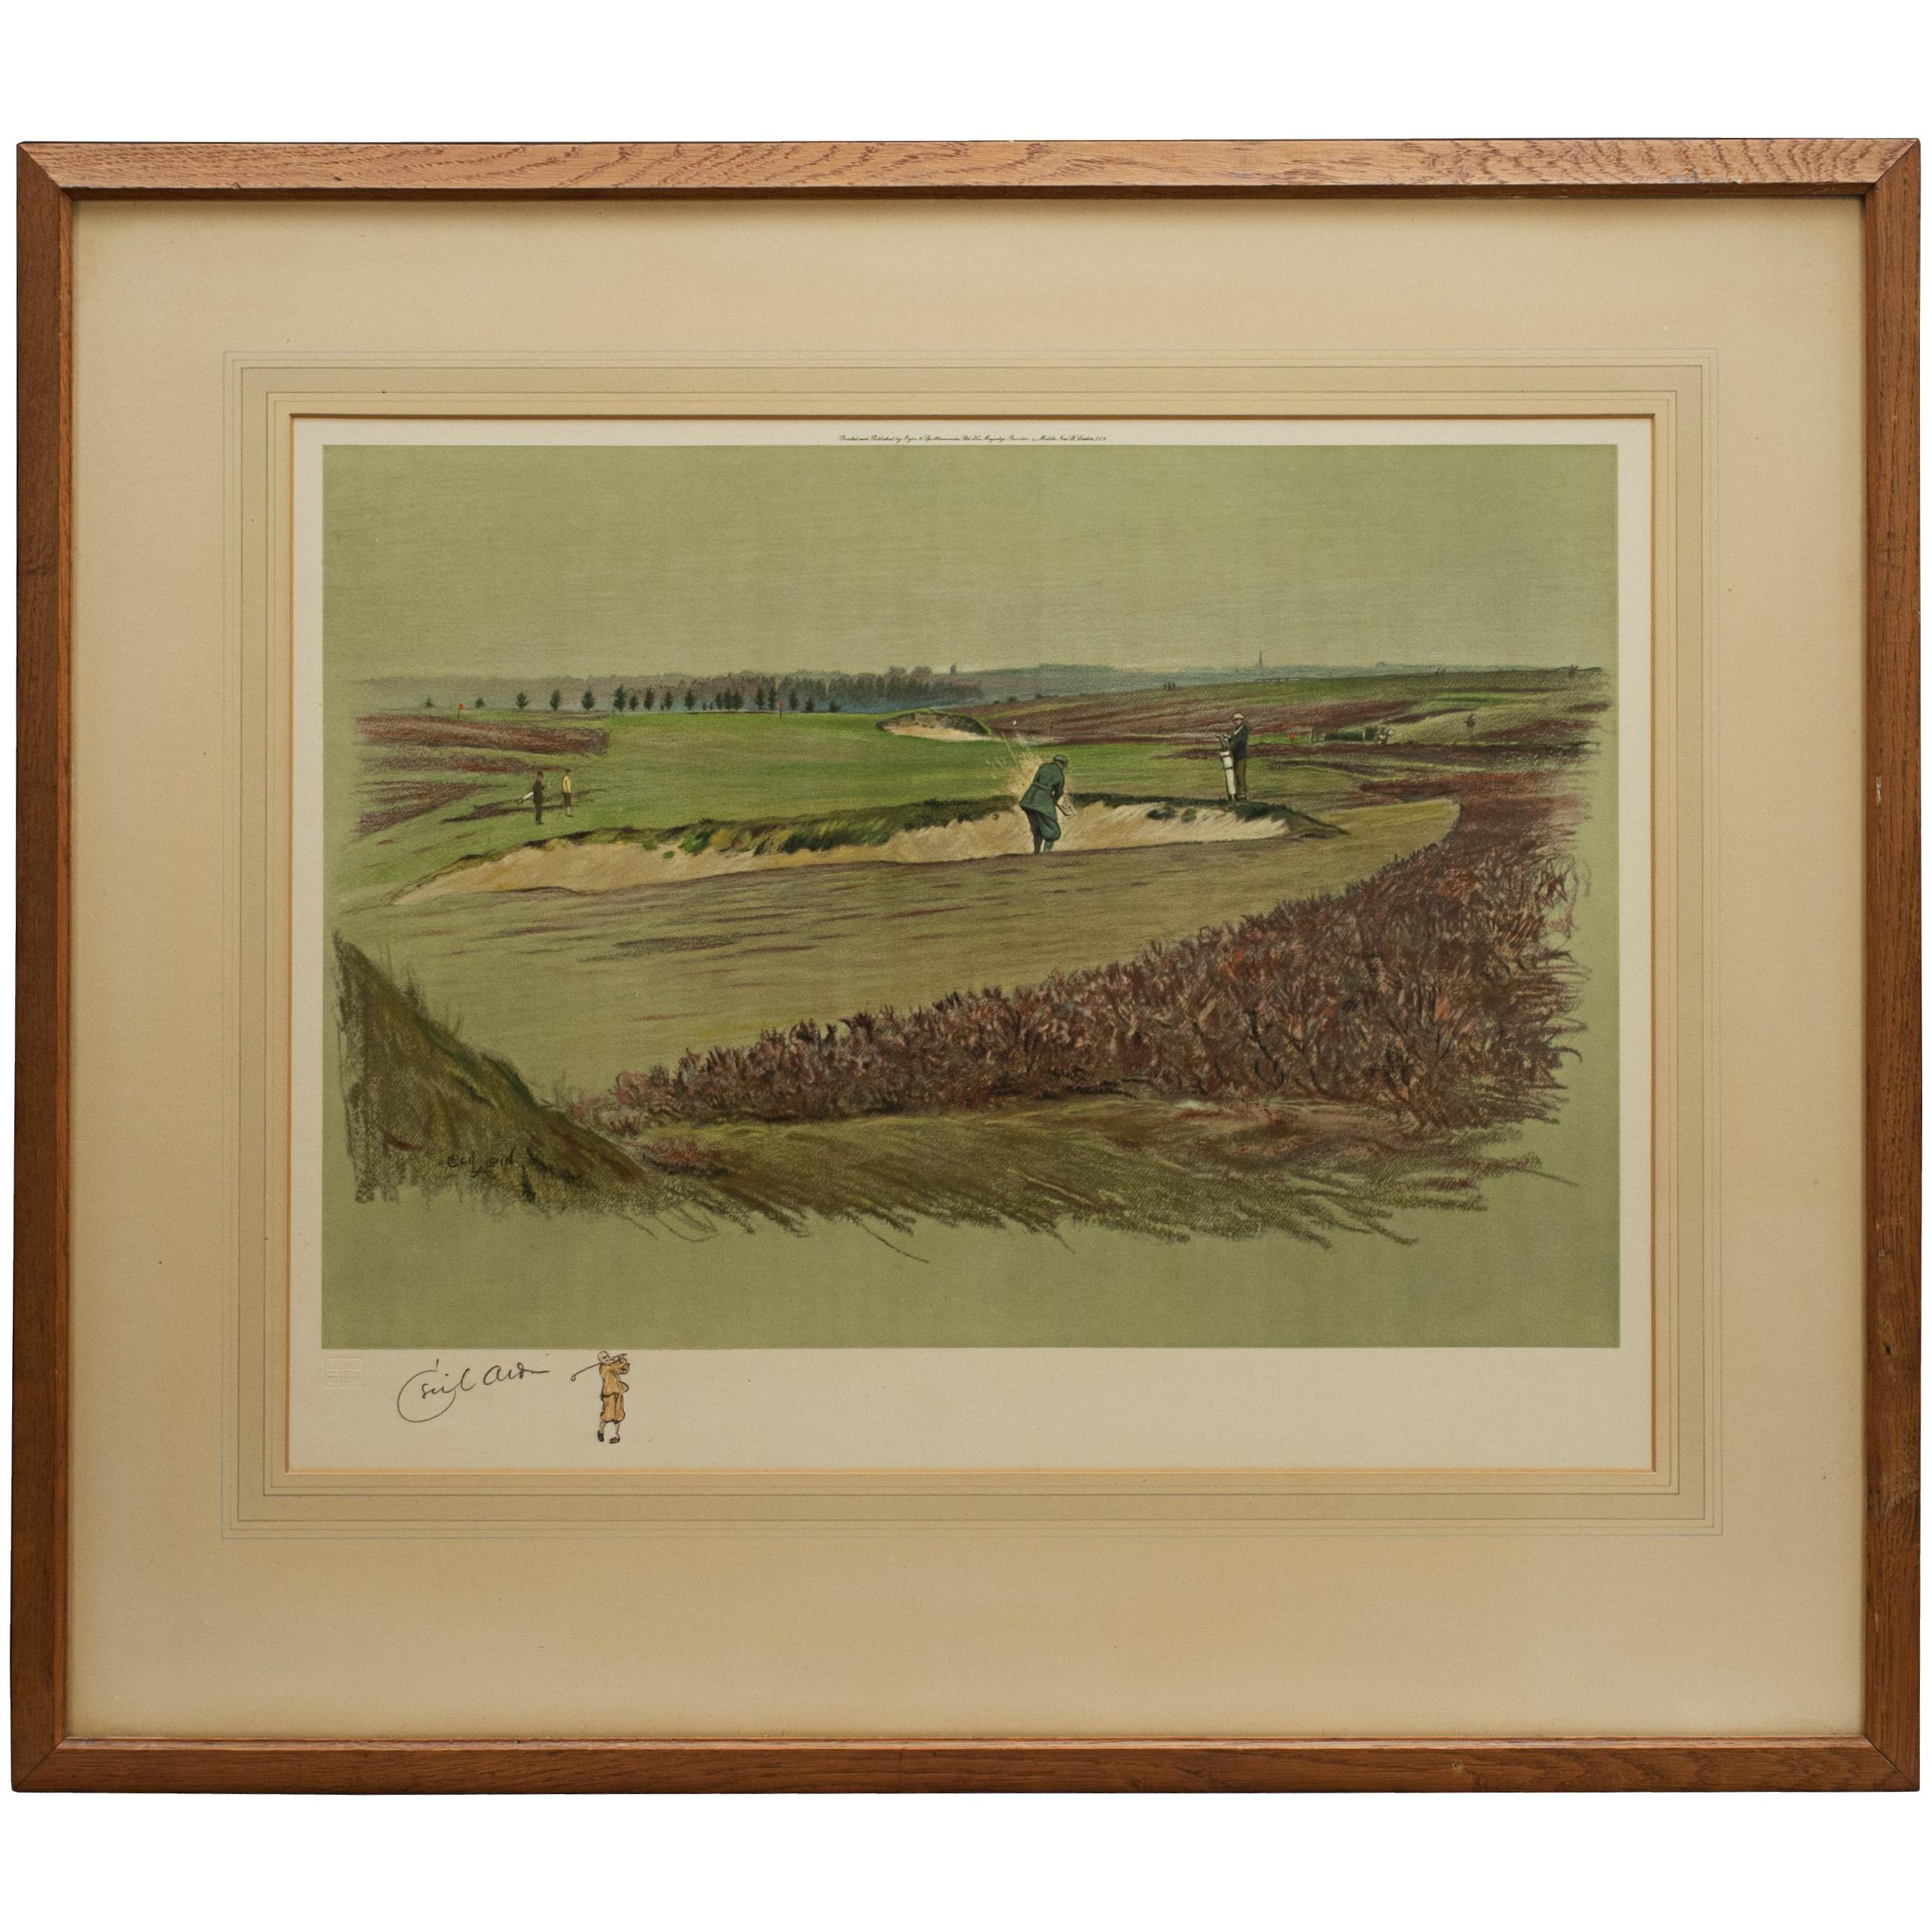 Antique Golf Print, Walton Heath-Old Course, Cecil Aldin